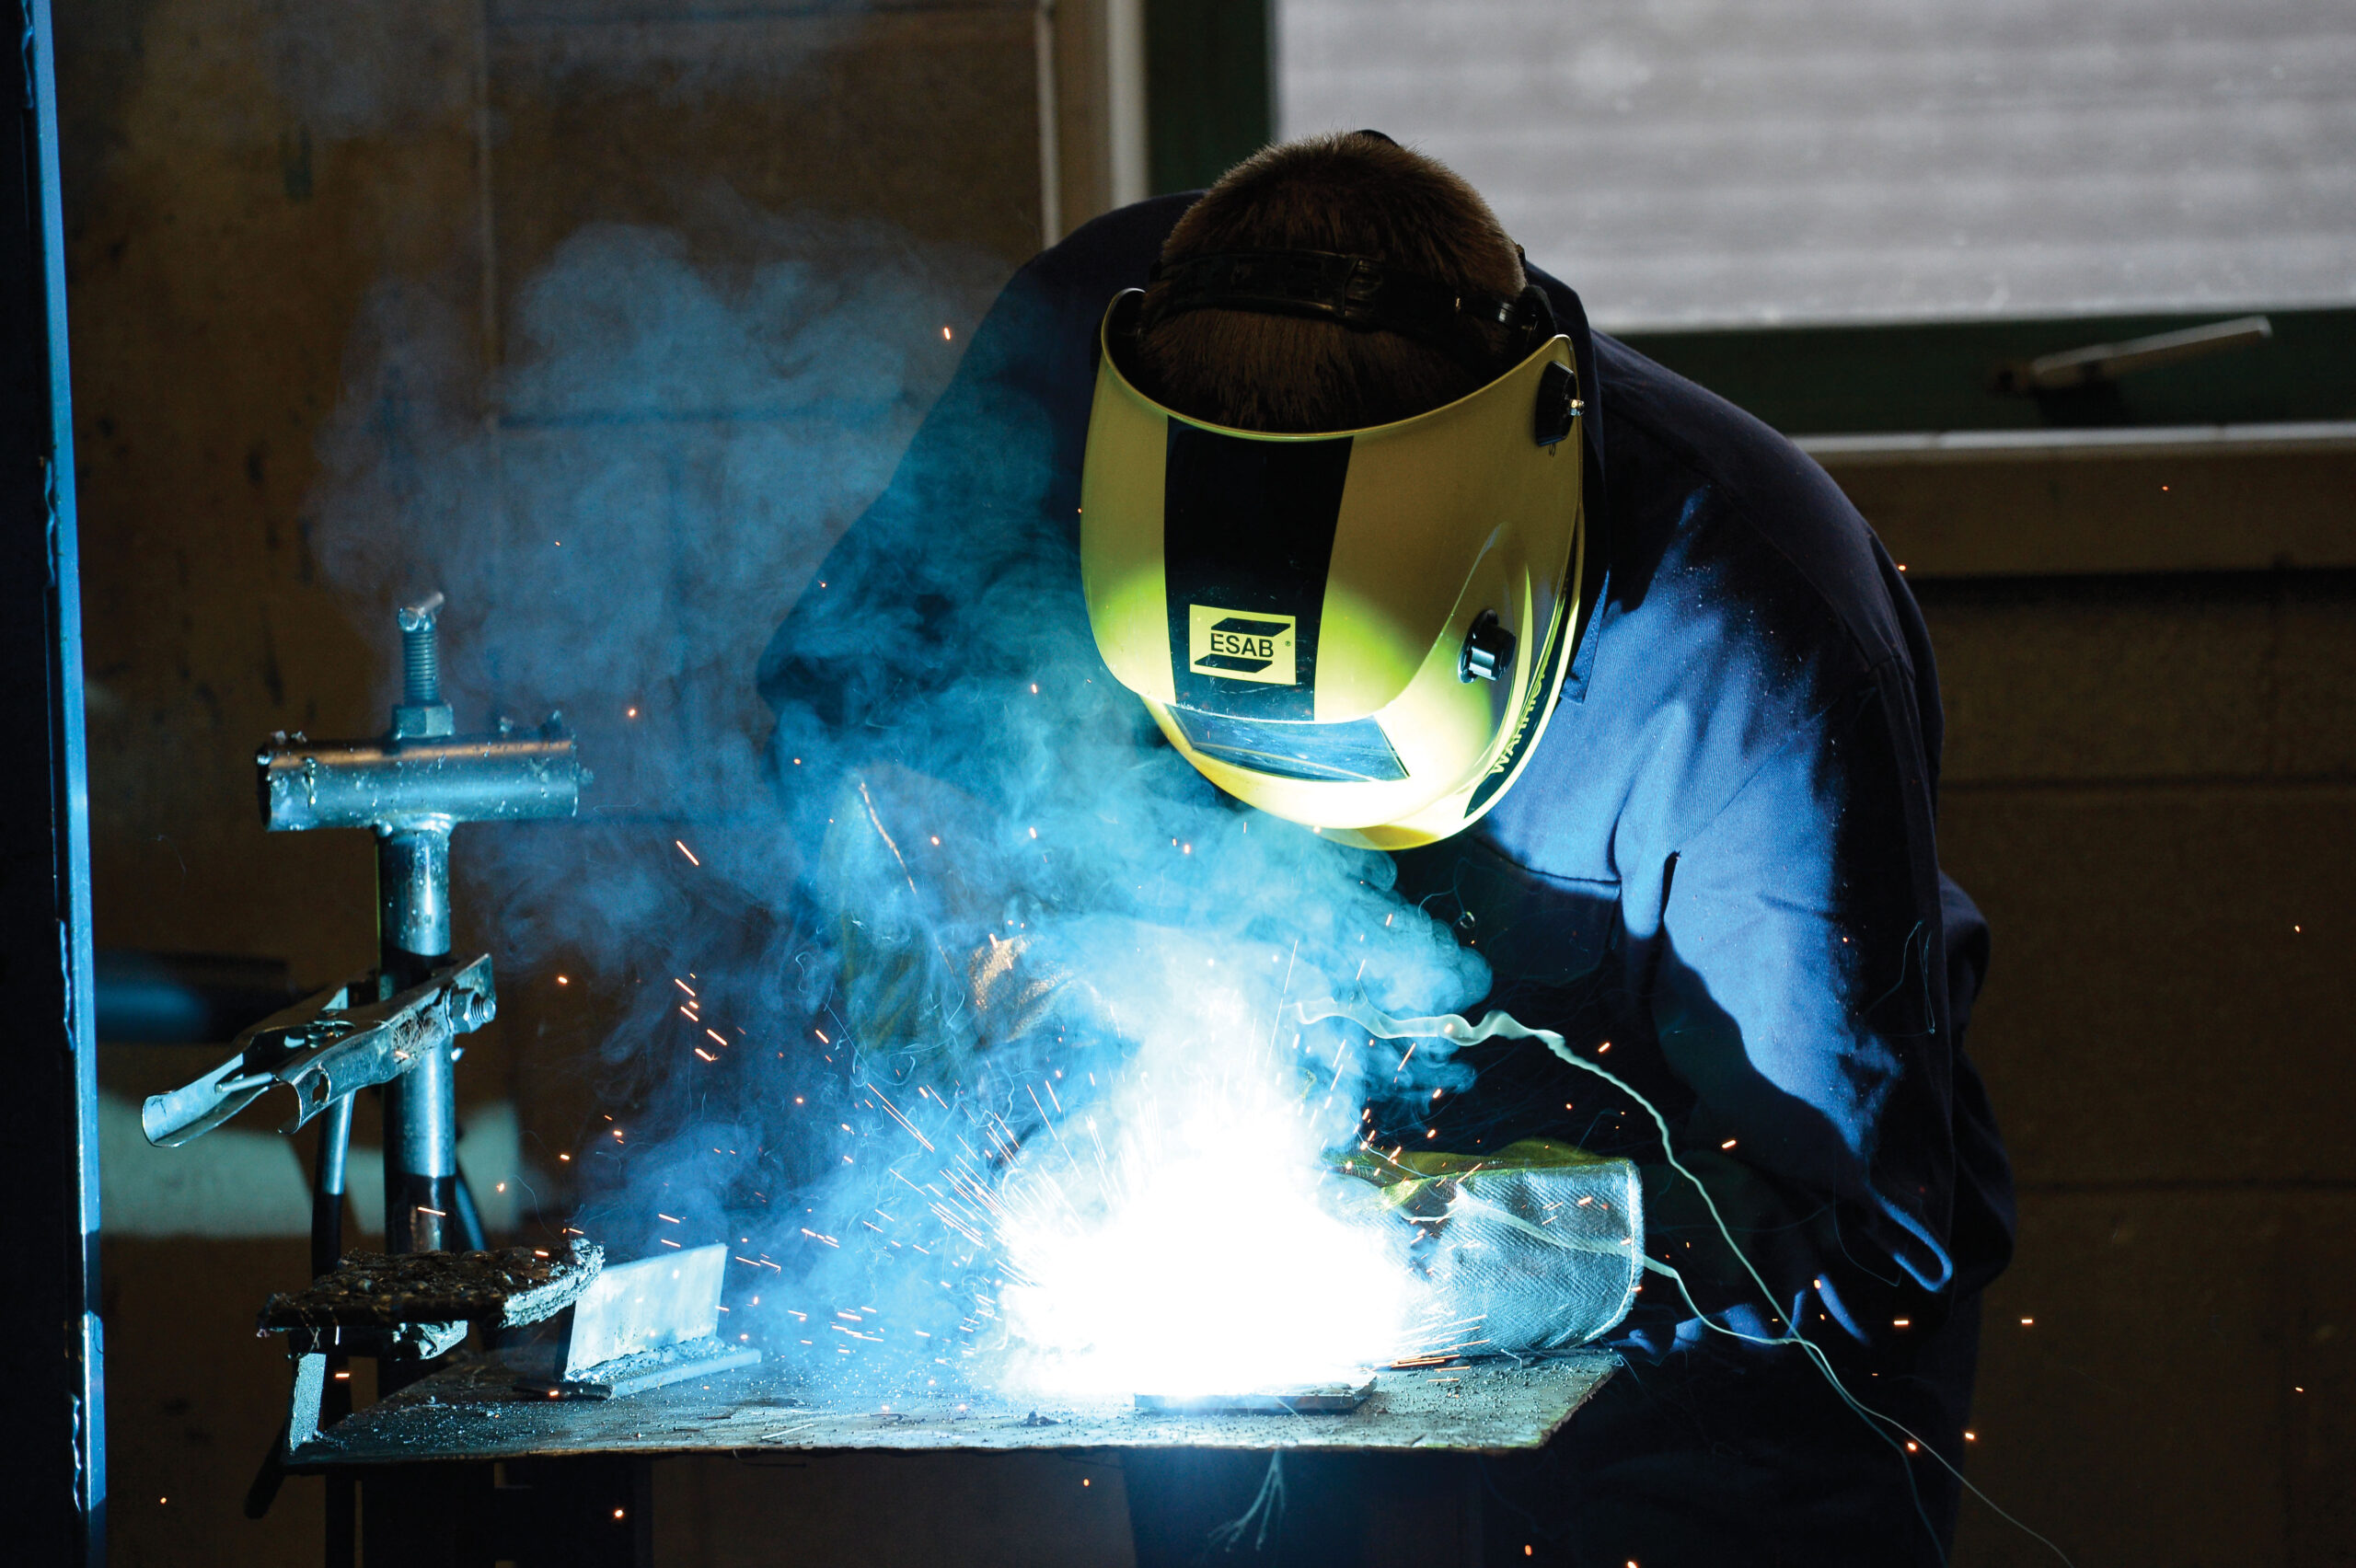 New Assured Skills Academy in welding at Southern Regional College announced | Newry Times - SRC Newry news